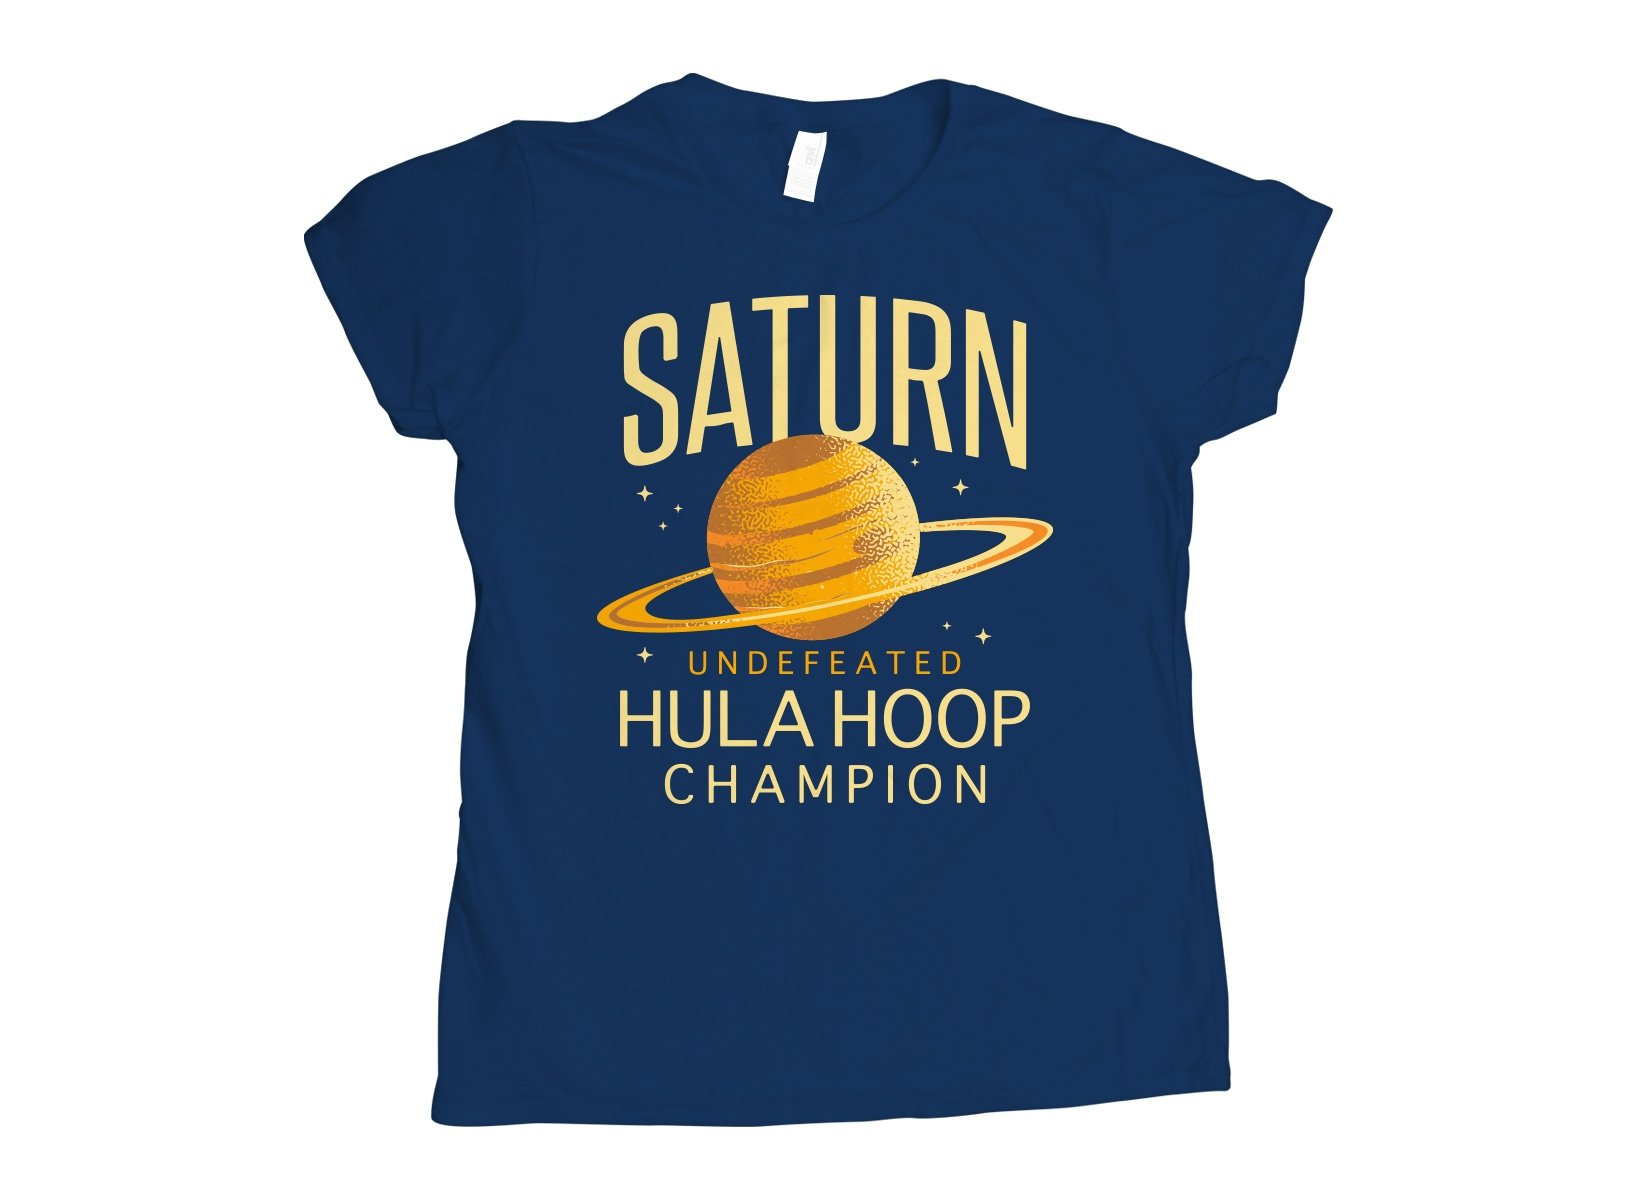 Undefeated Hula Hoop Champion on Womens T-Shirt